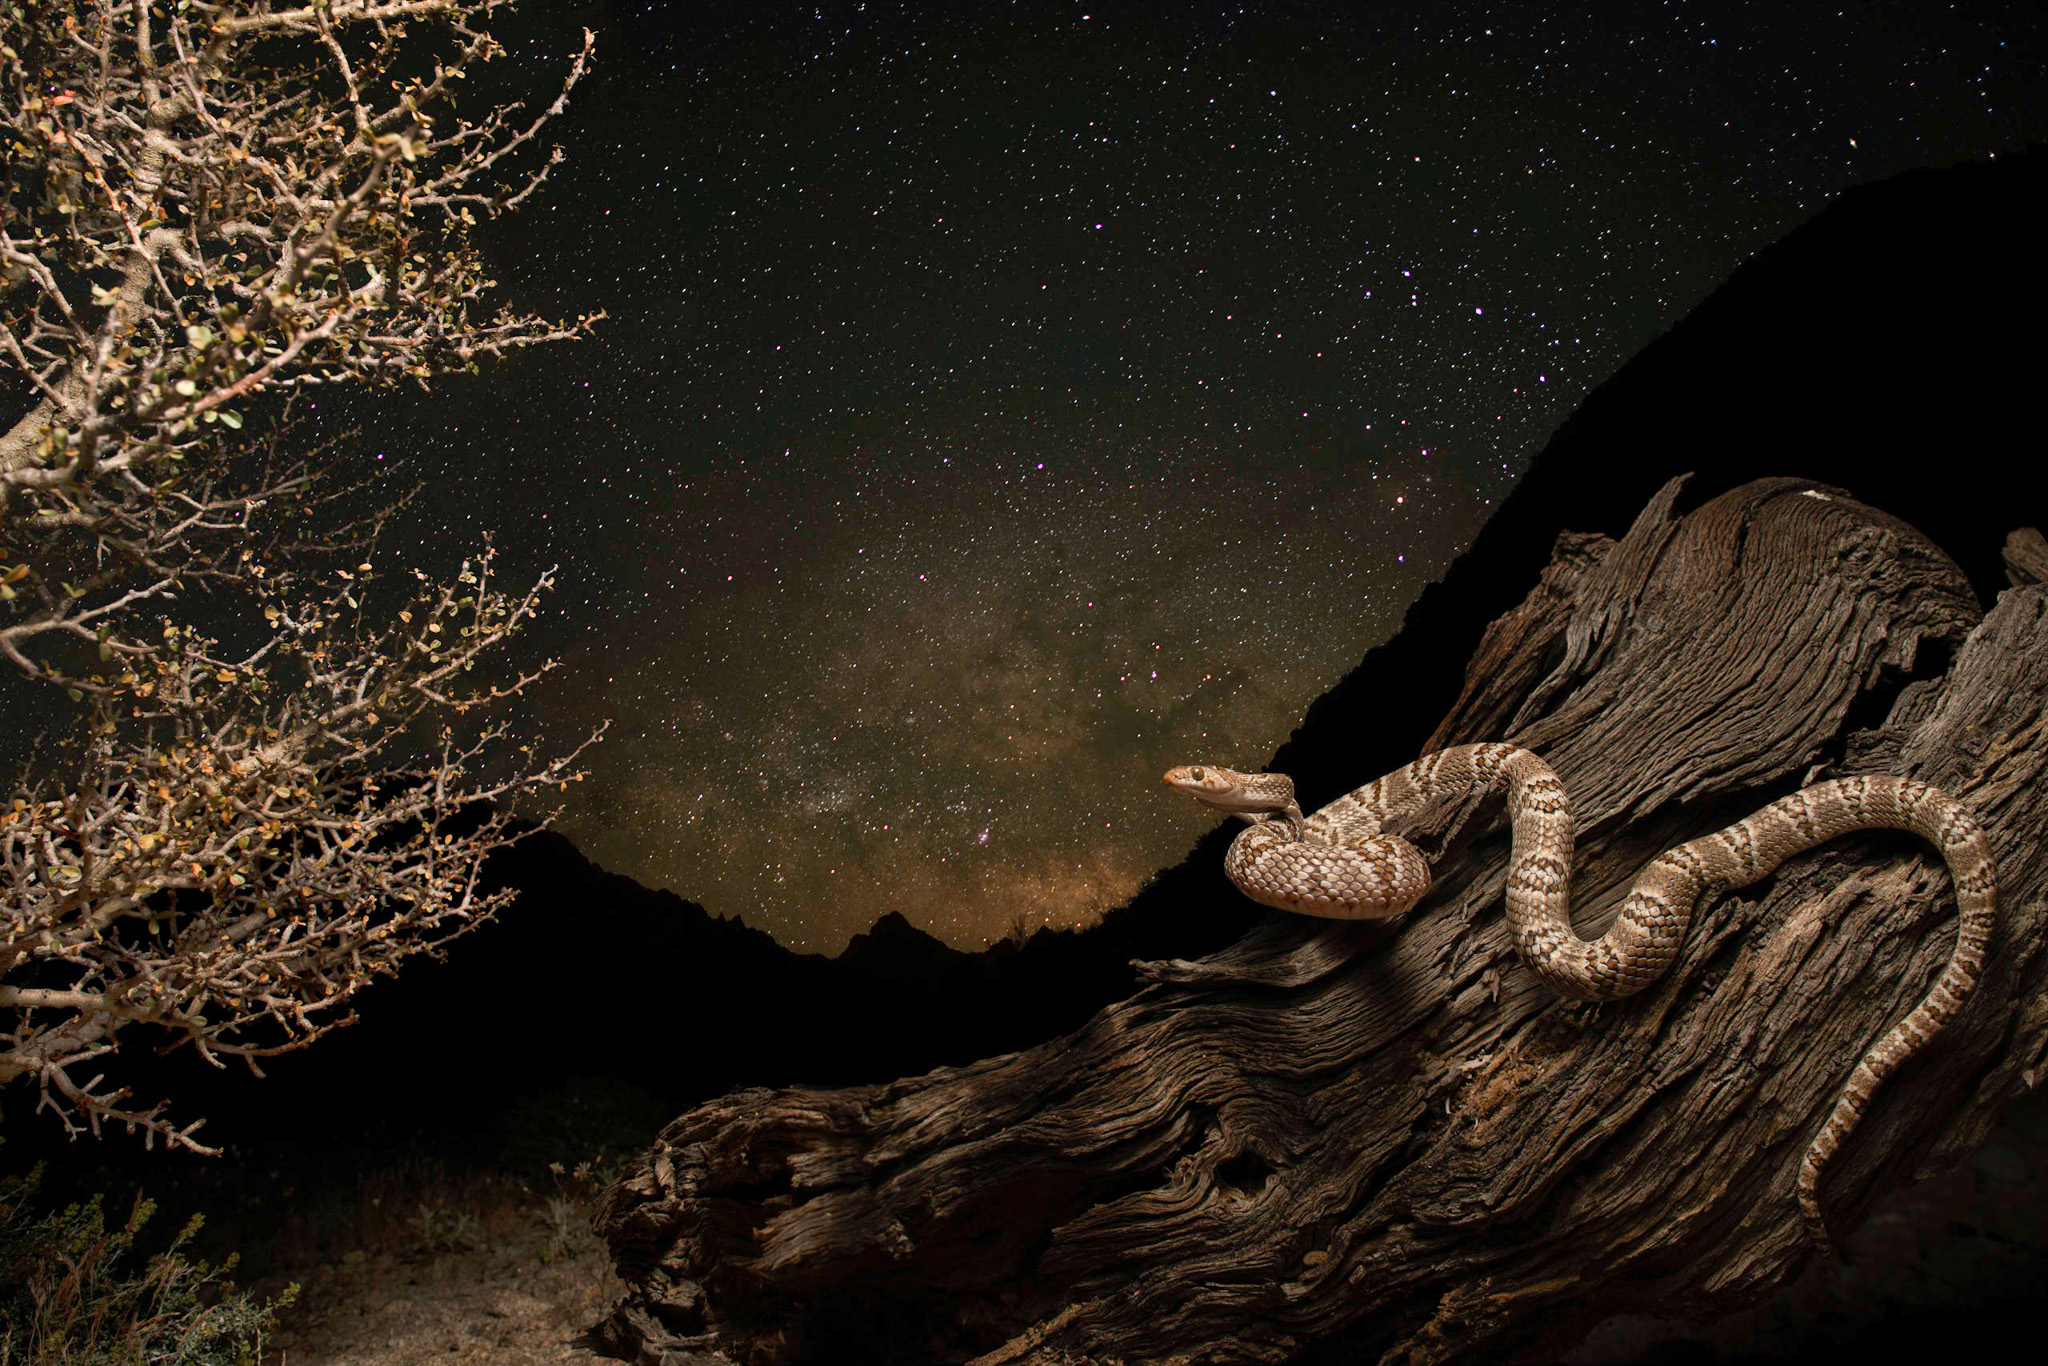 Photo by Scott Trageser     Lyre snake with stars. Composite photo of three images taken on tripod with the intention of accurately representing the scene.